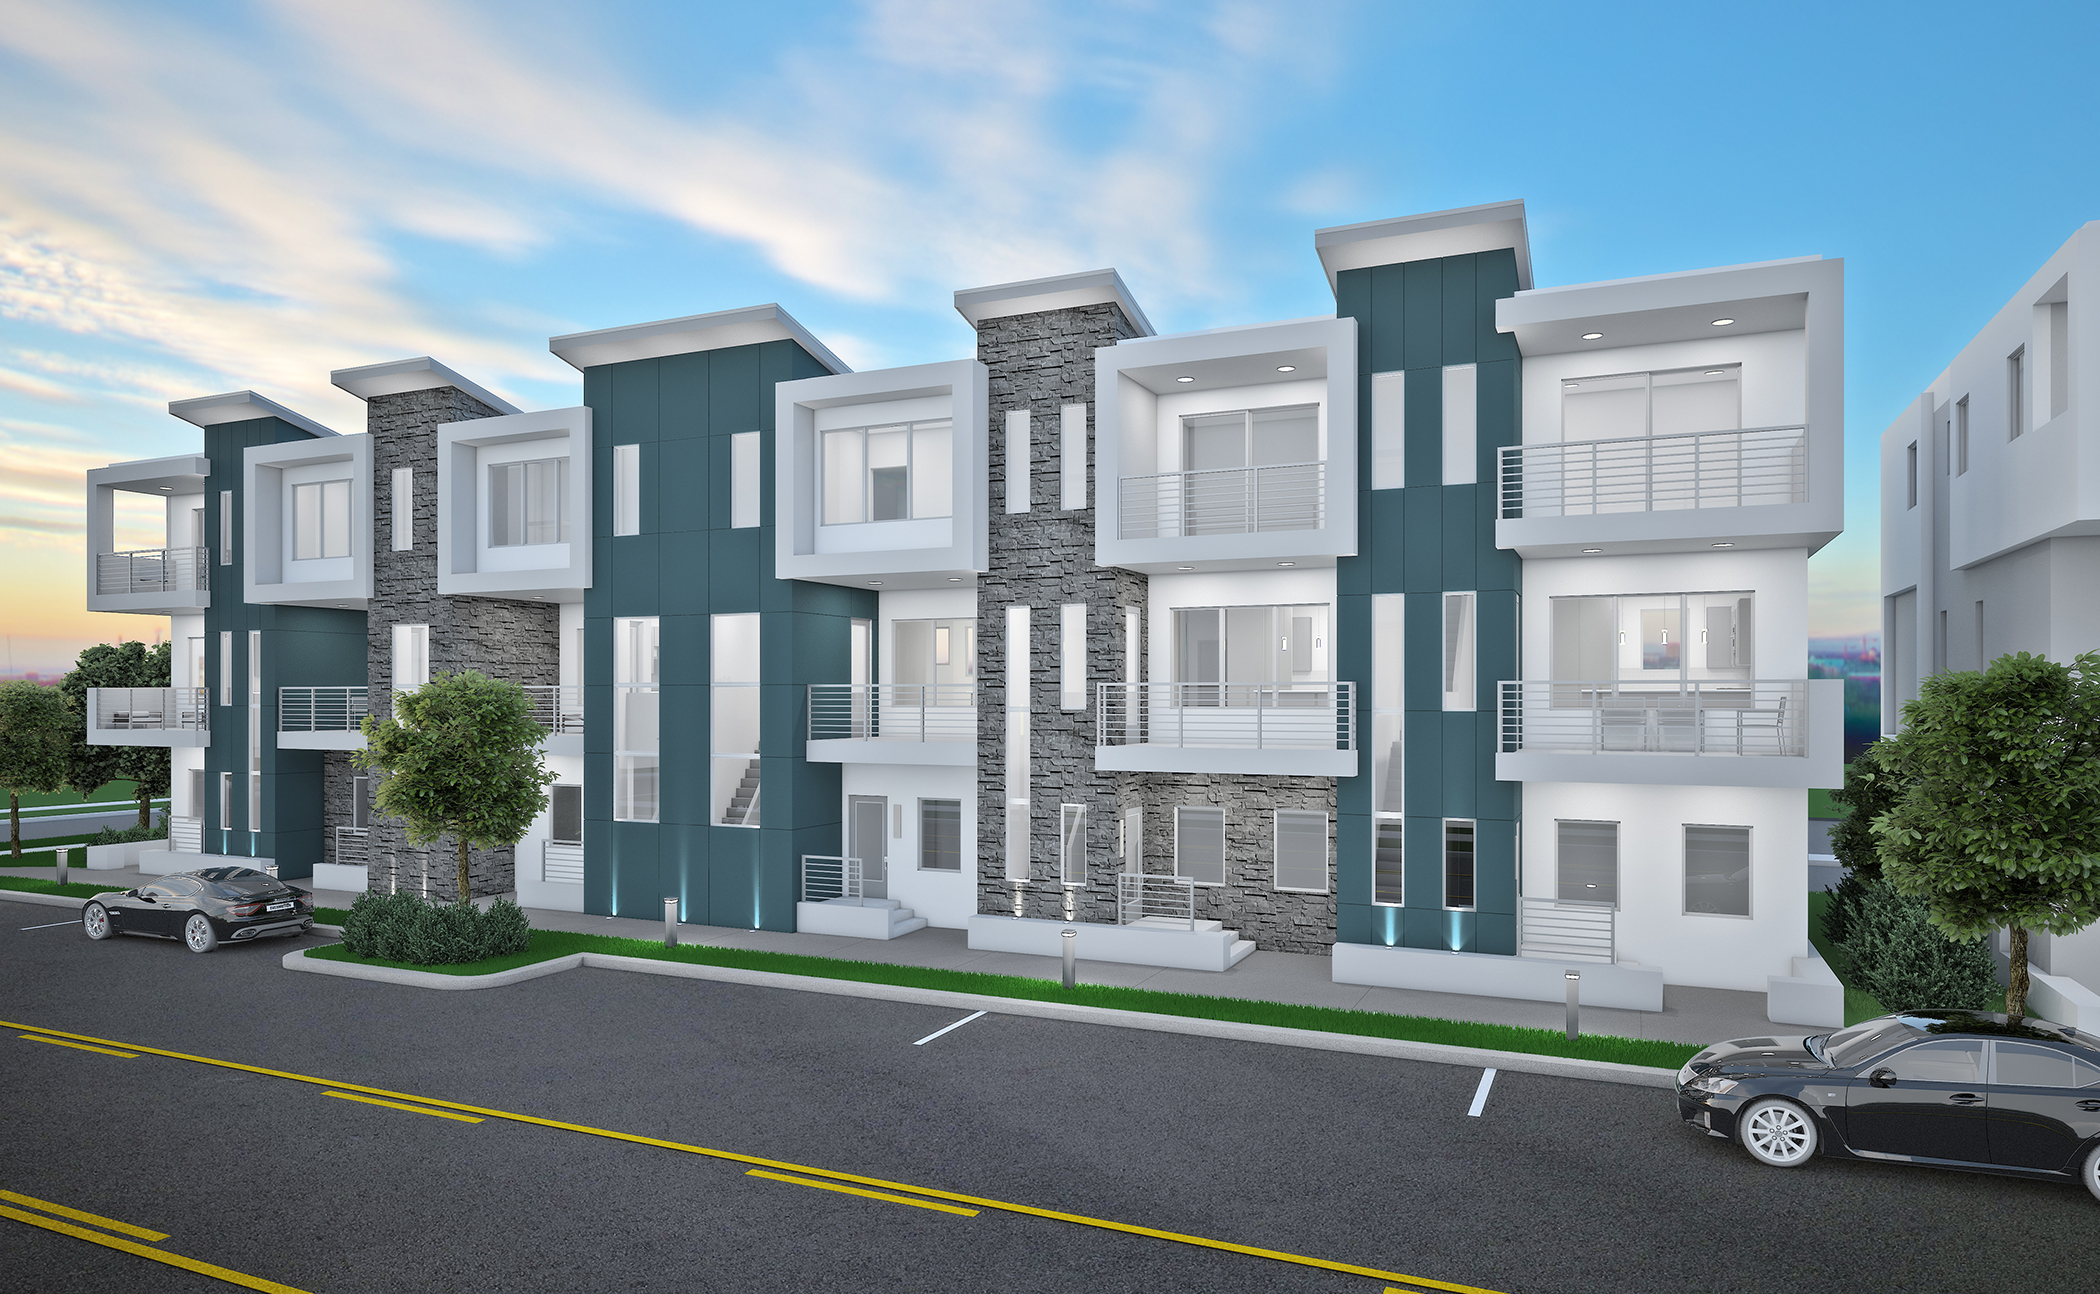 SoDo-Place_Rendering_Blue_Angle_Exterior_72dpi.jpg